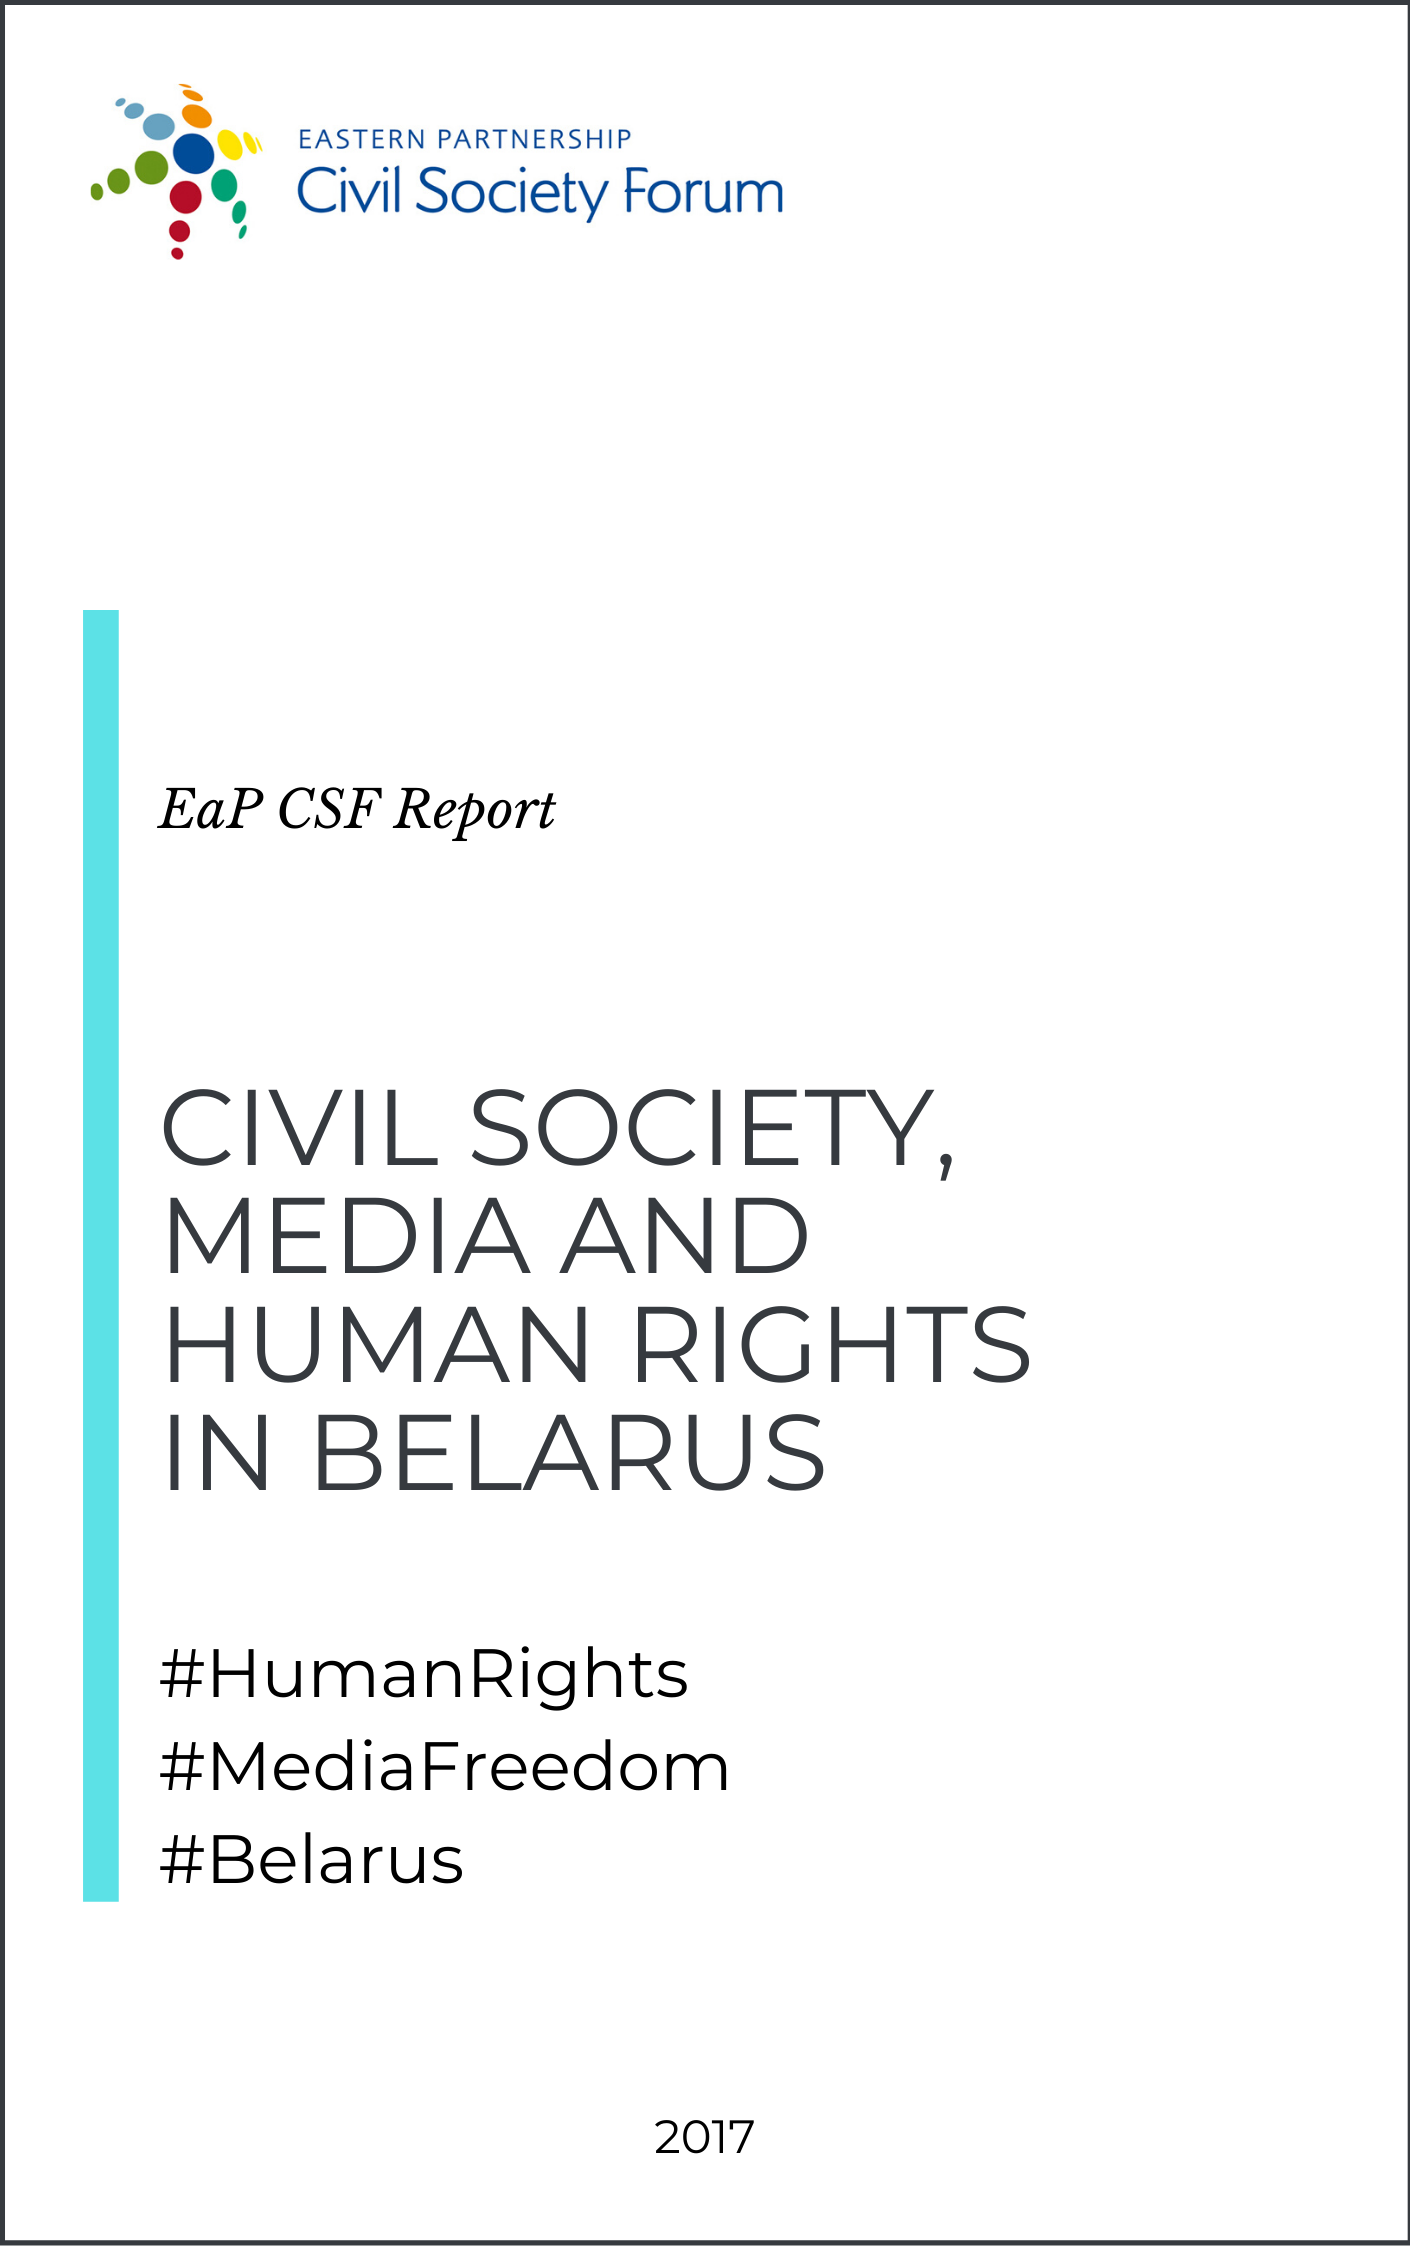 Civil Society, Media and Human Rights in Belarus (Report)